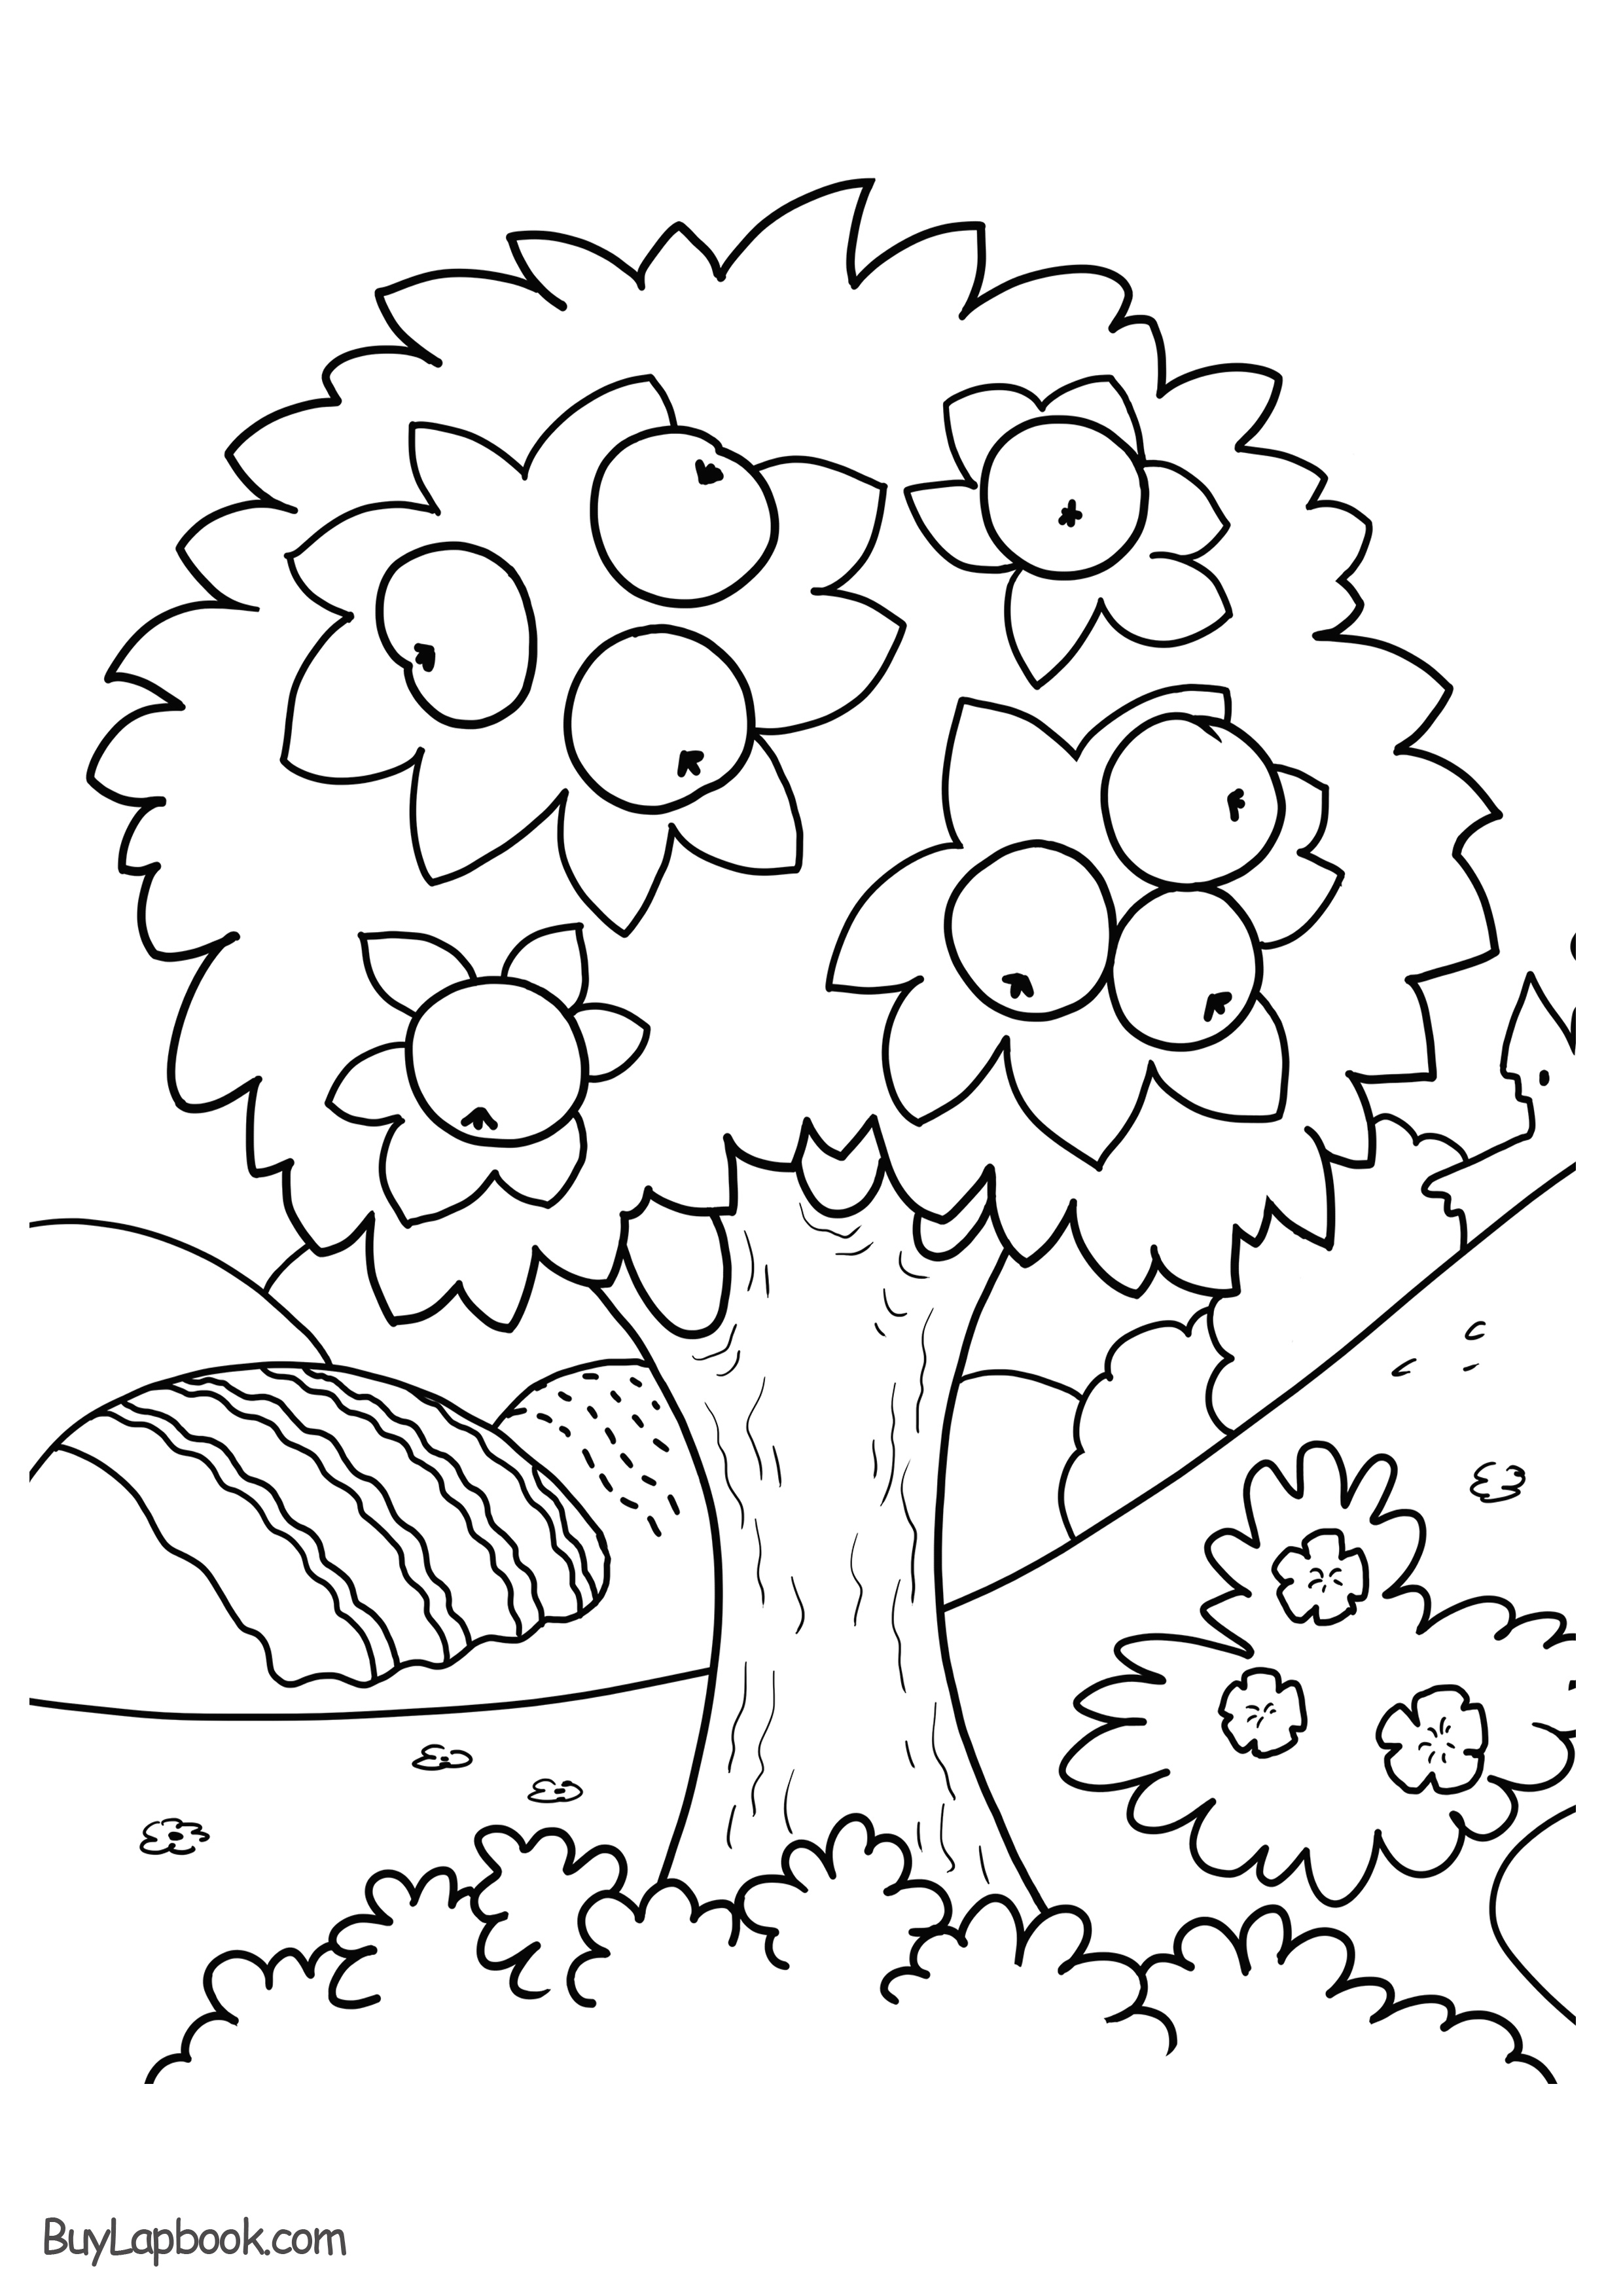 coloring sheet of a tree coloring pages torah tree ann d koffsky of coloring tree a sheet